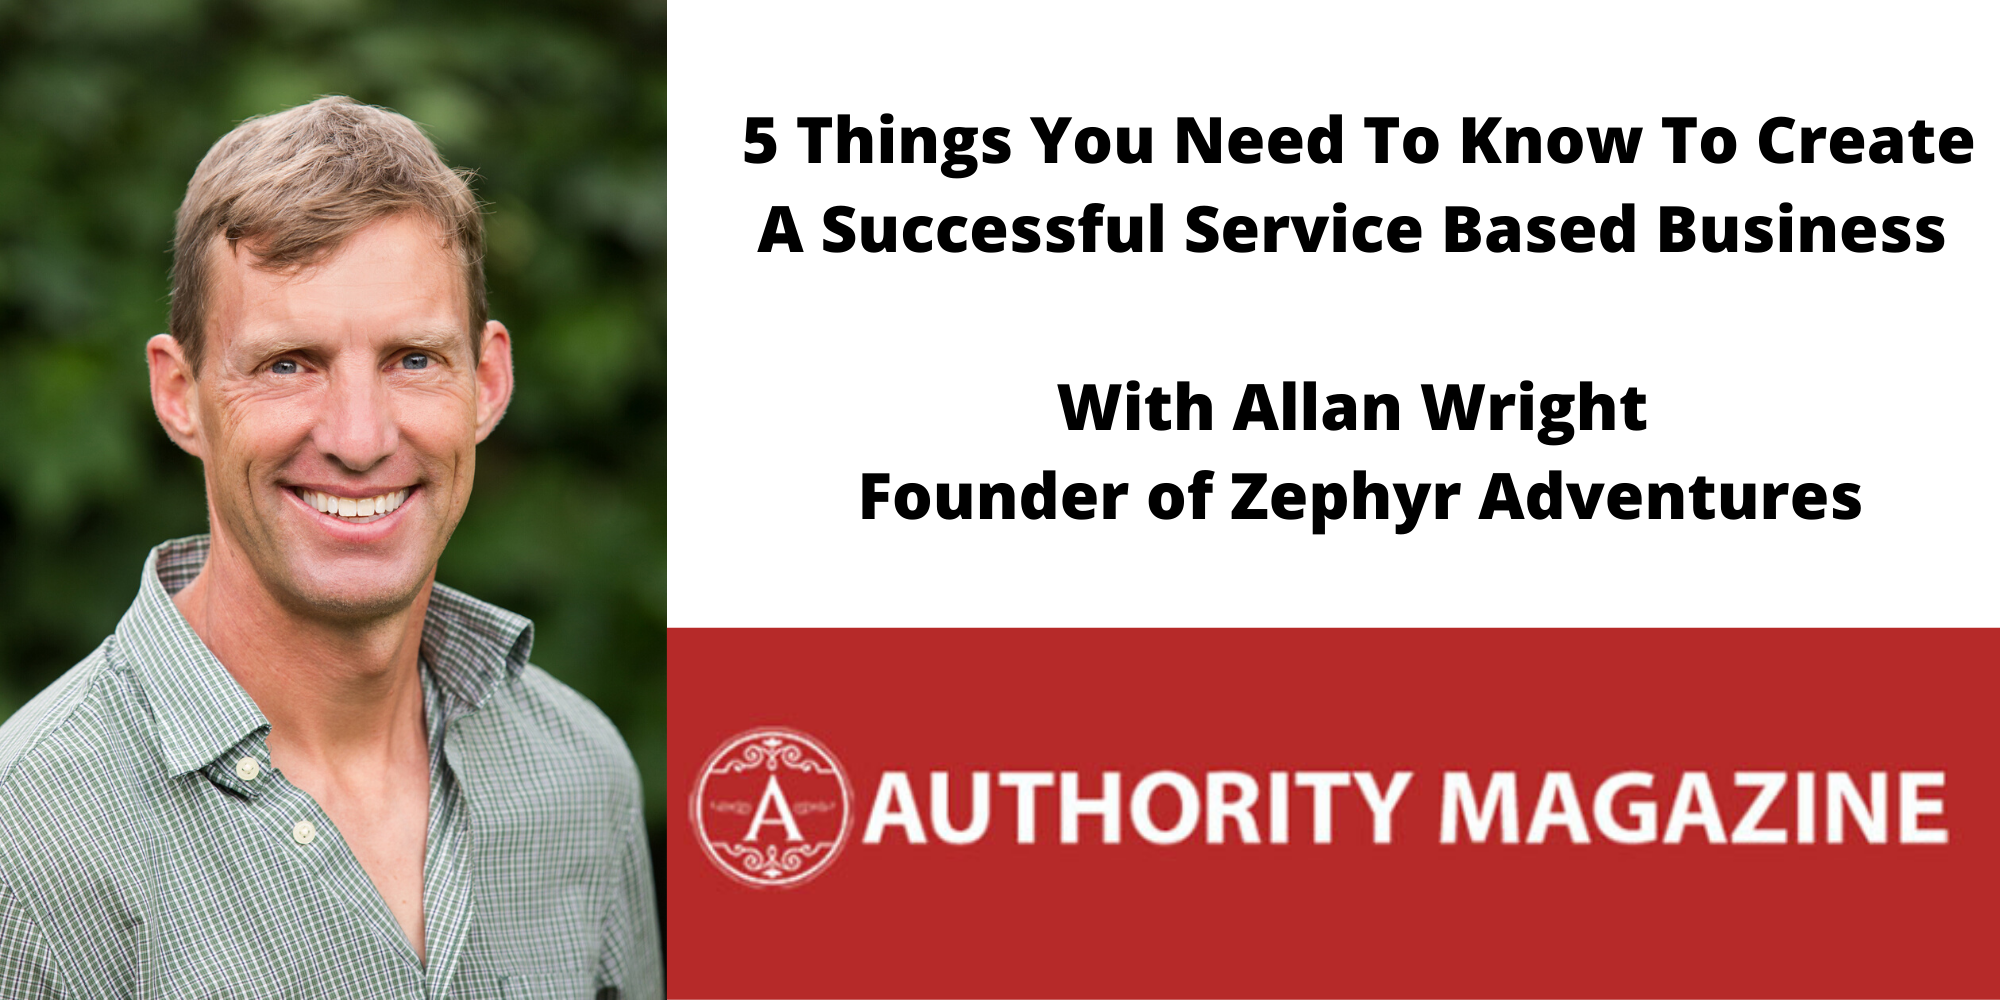 Interview With Allan Wright – 5 Things You Need To Know To Create A Successful Service Based Business